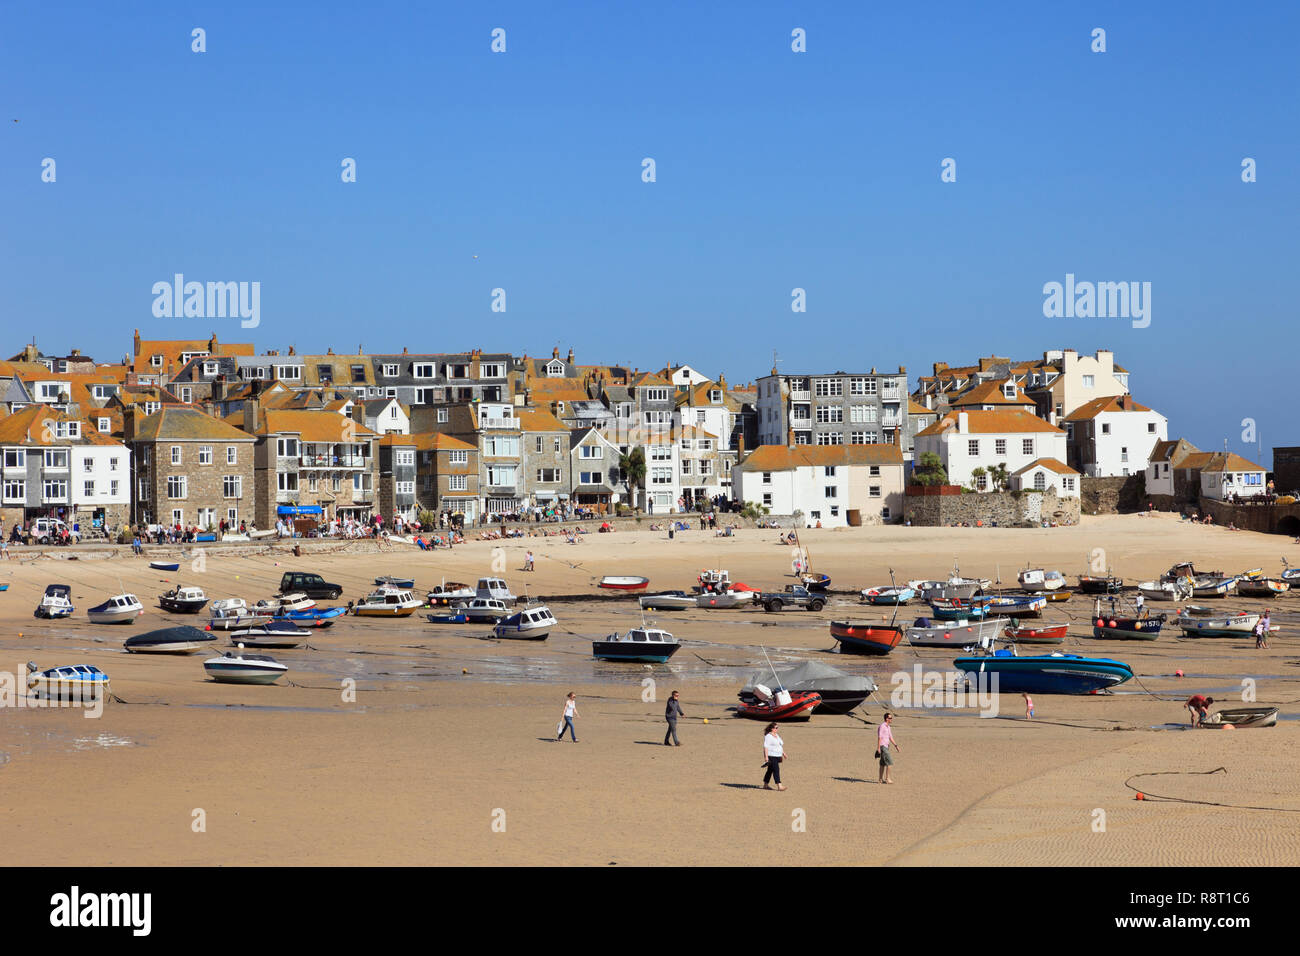 View of moored boats in the sandy harbour at low tide. St Ives, Cornwall, England, UK, Great Britain Stock Photo